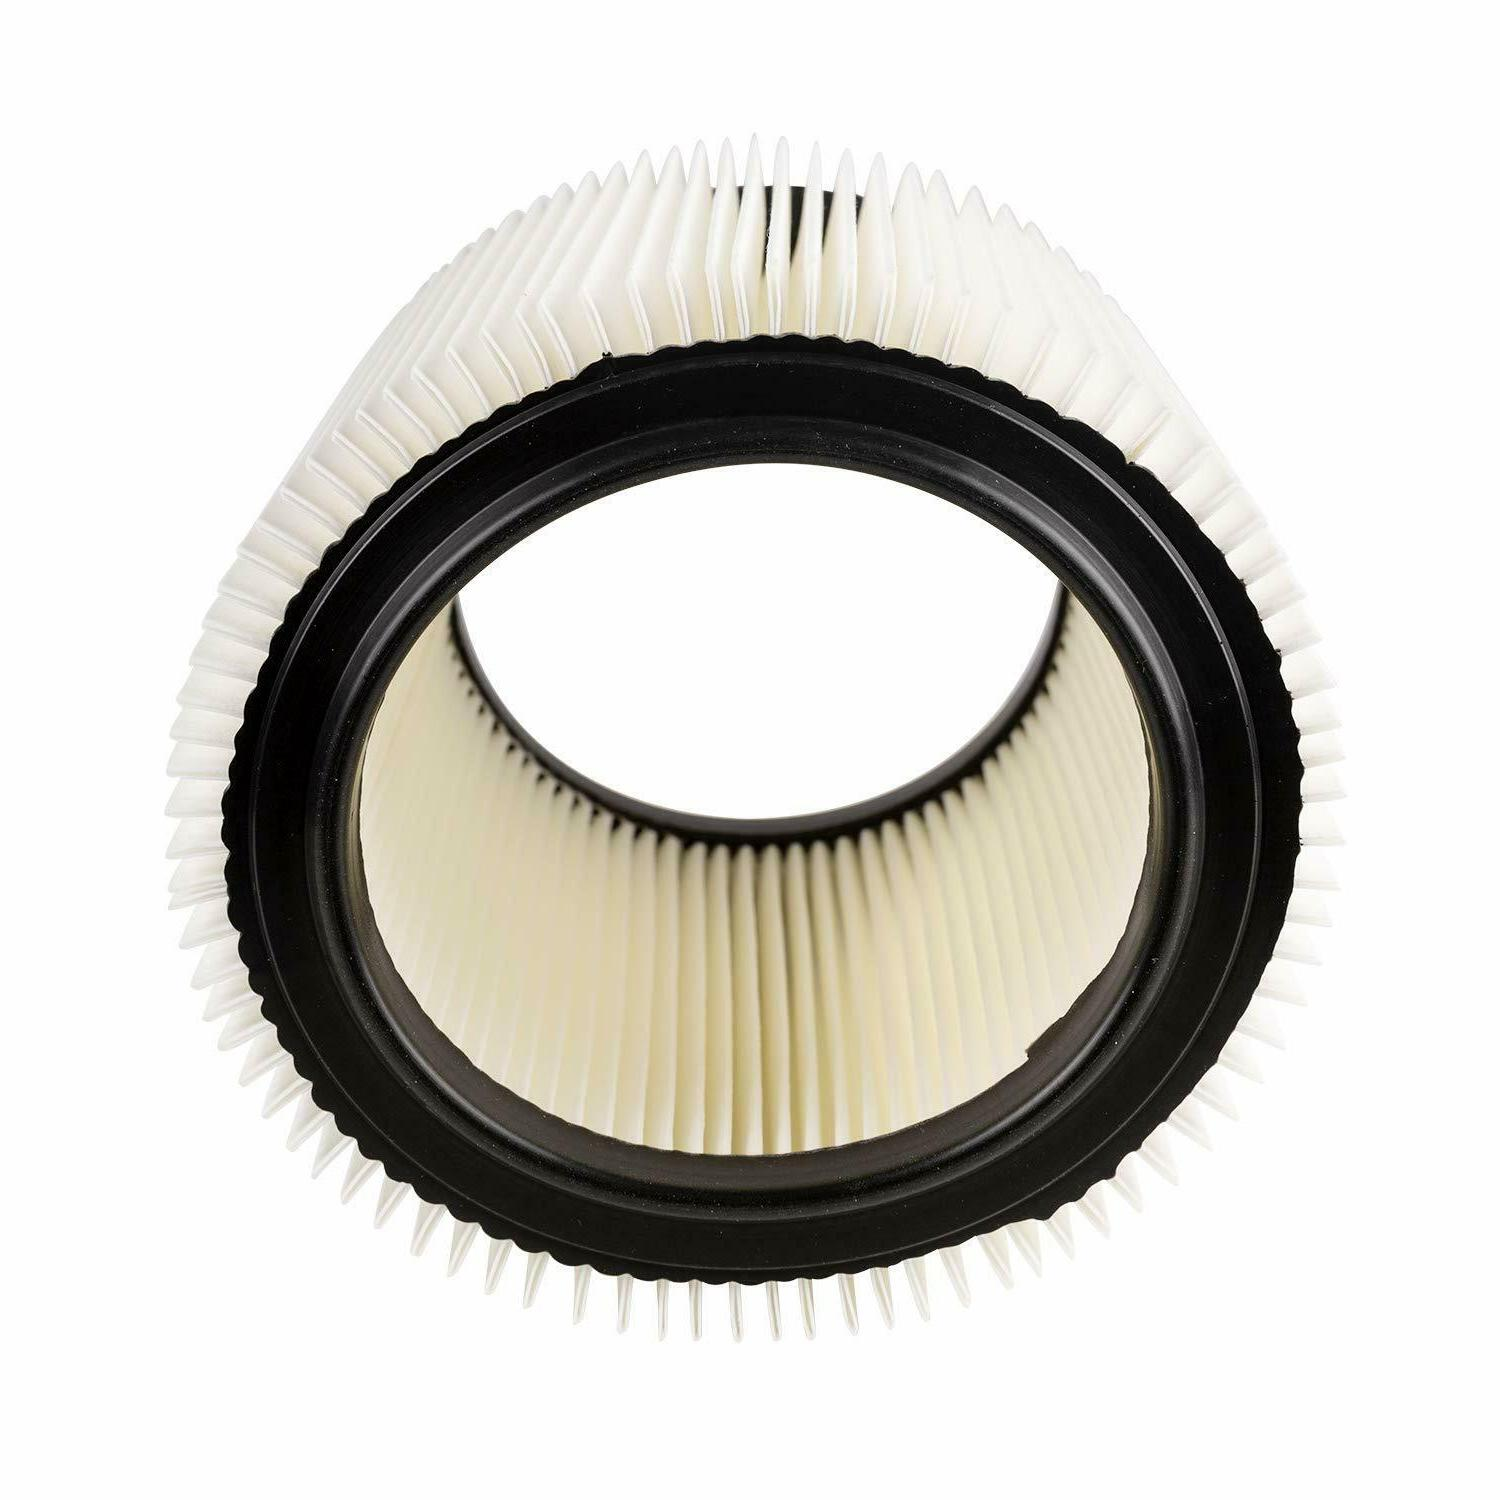 Replacement Vac Filter for 6 12 gallon.